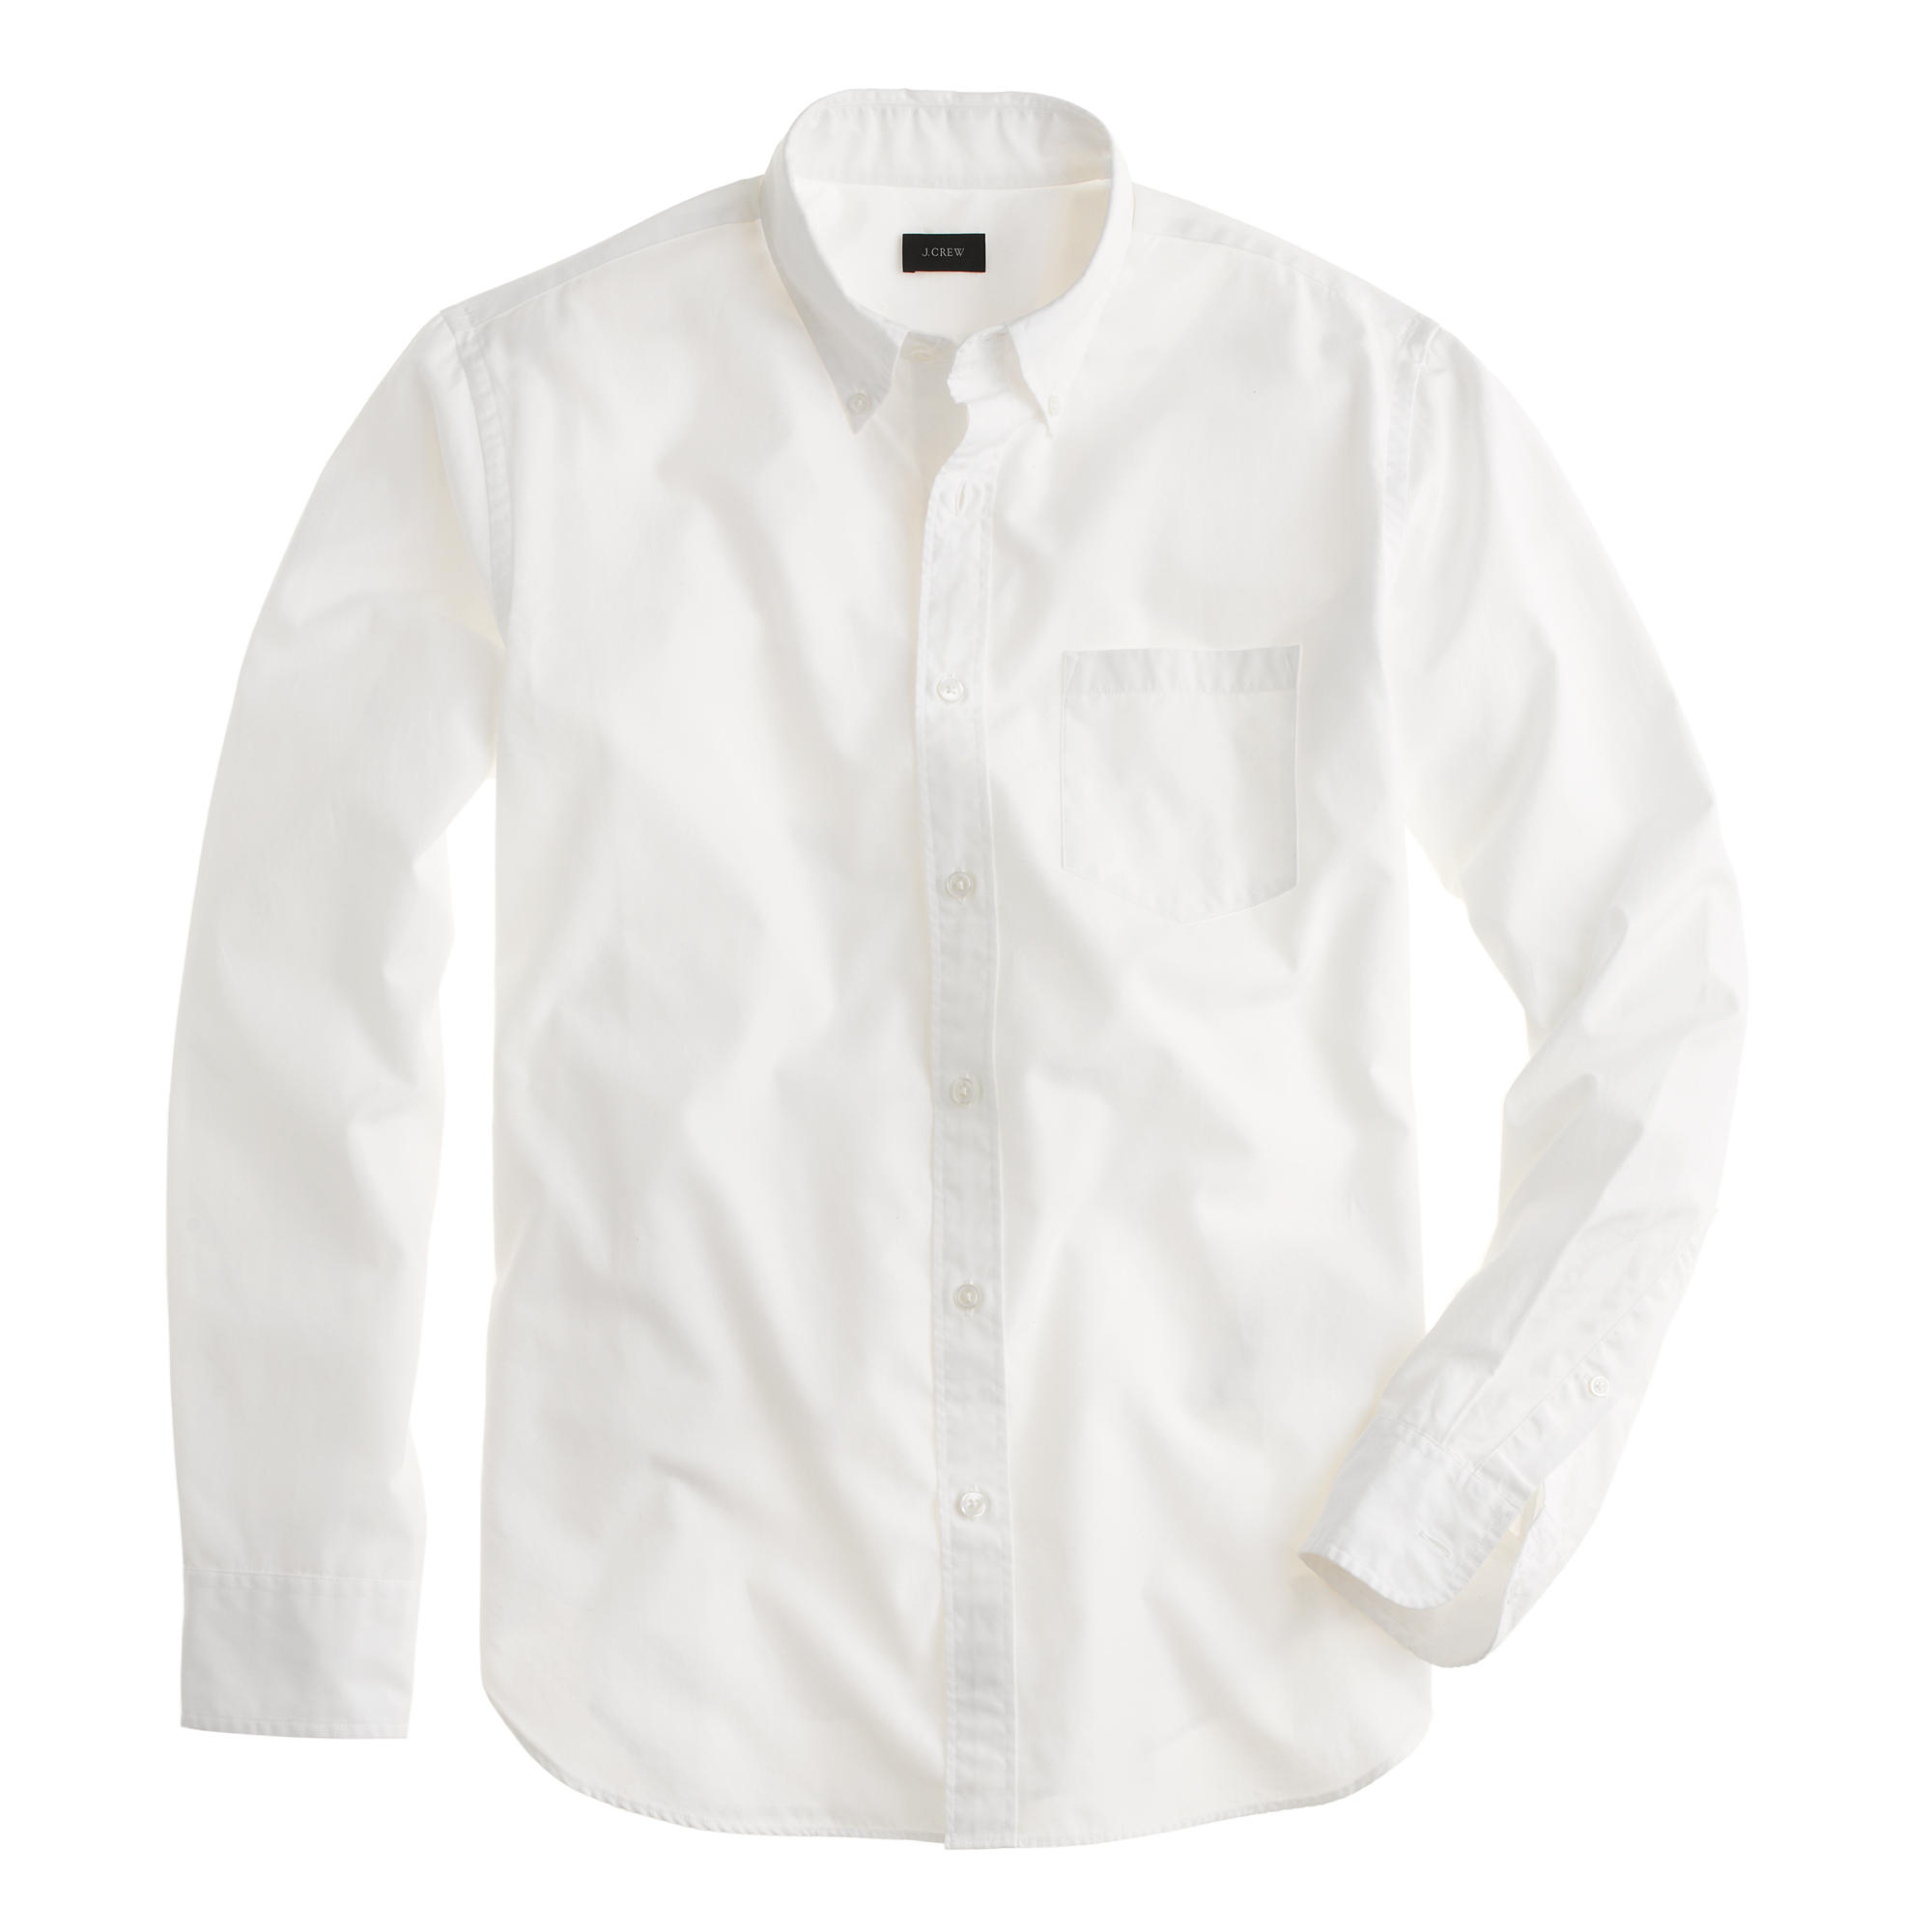 Secret Wash Shirt In White : Men's Shirts | J.Crew